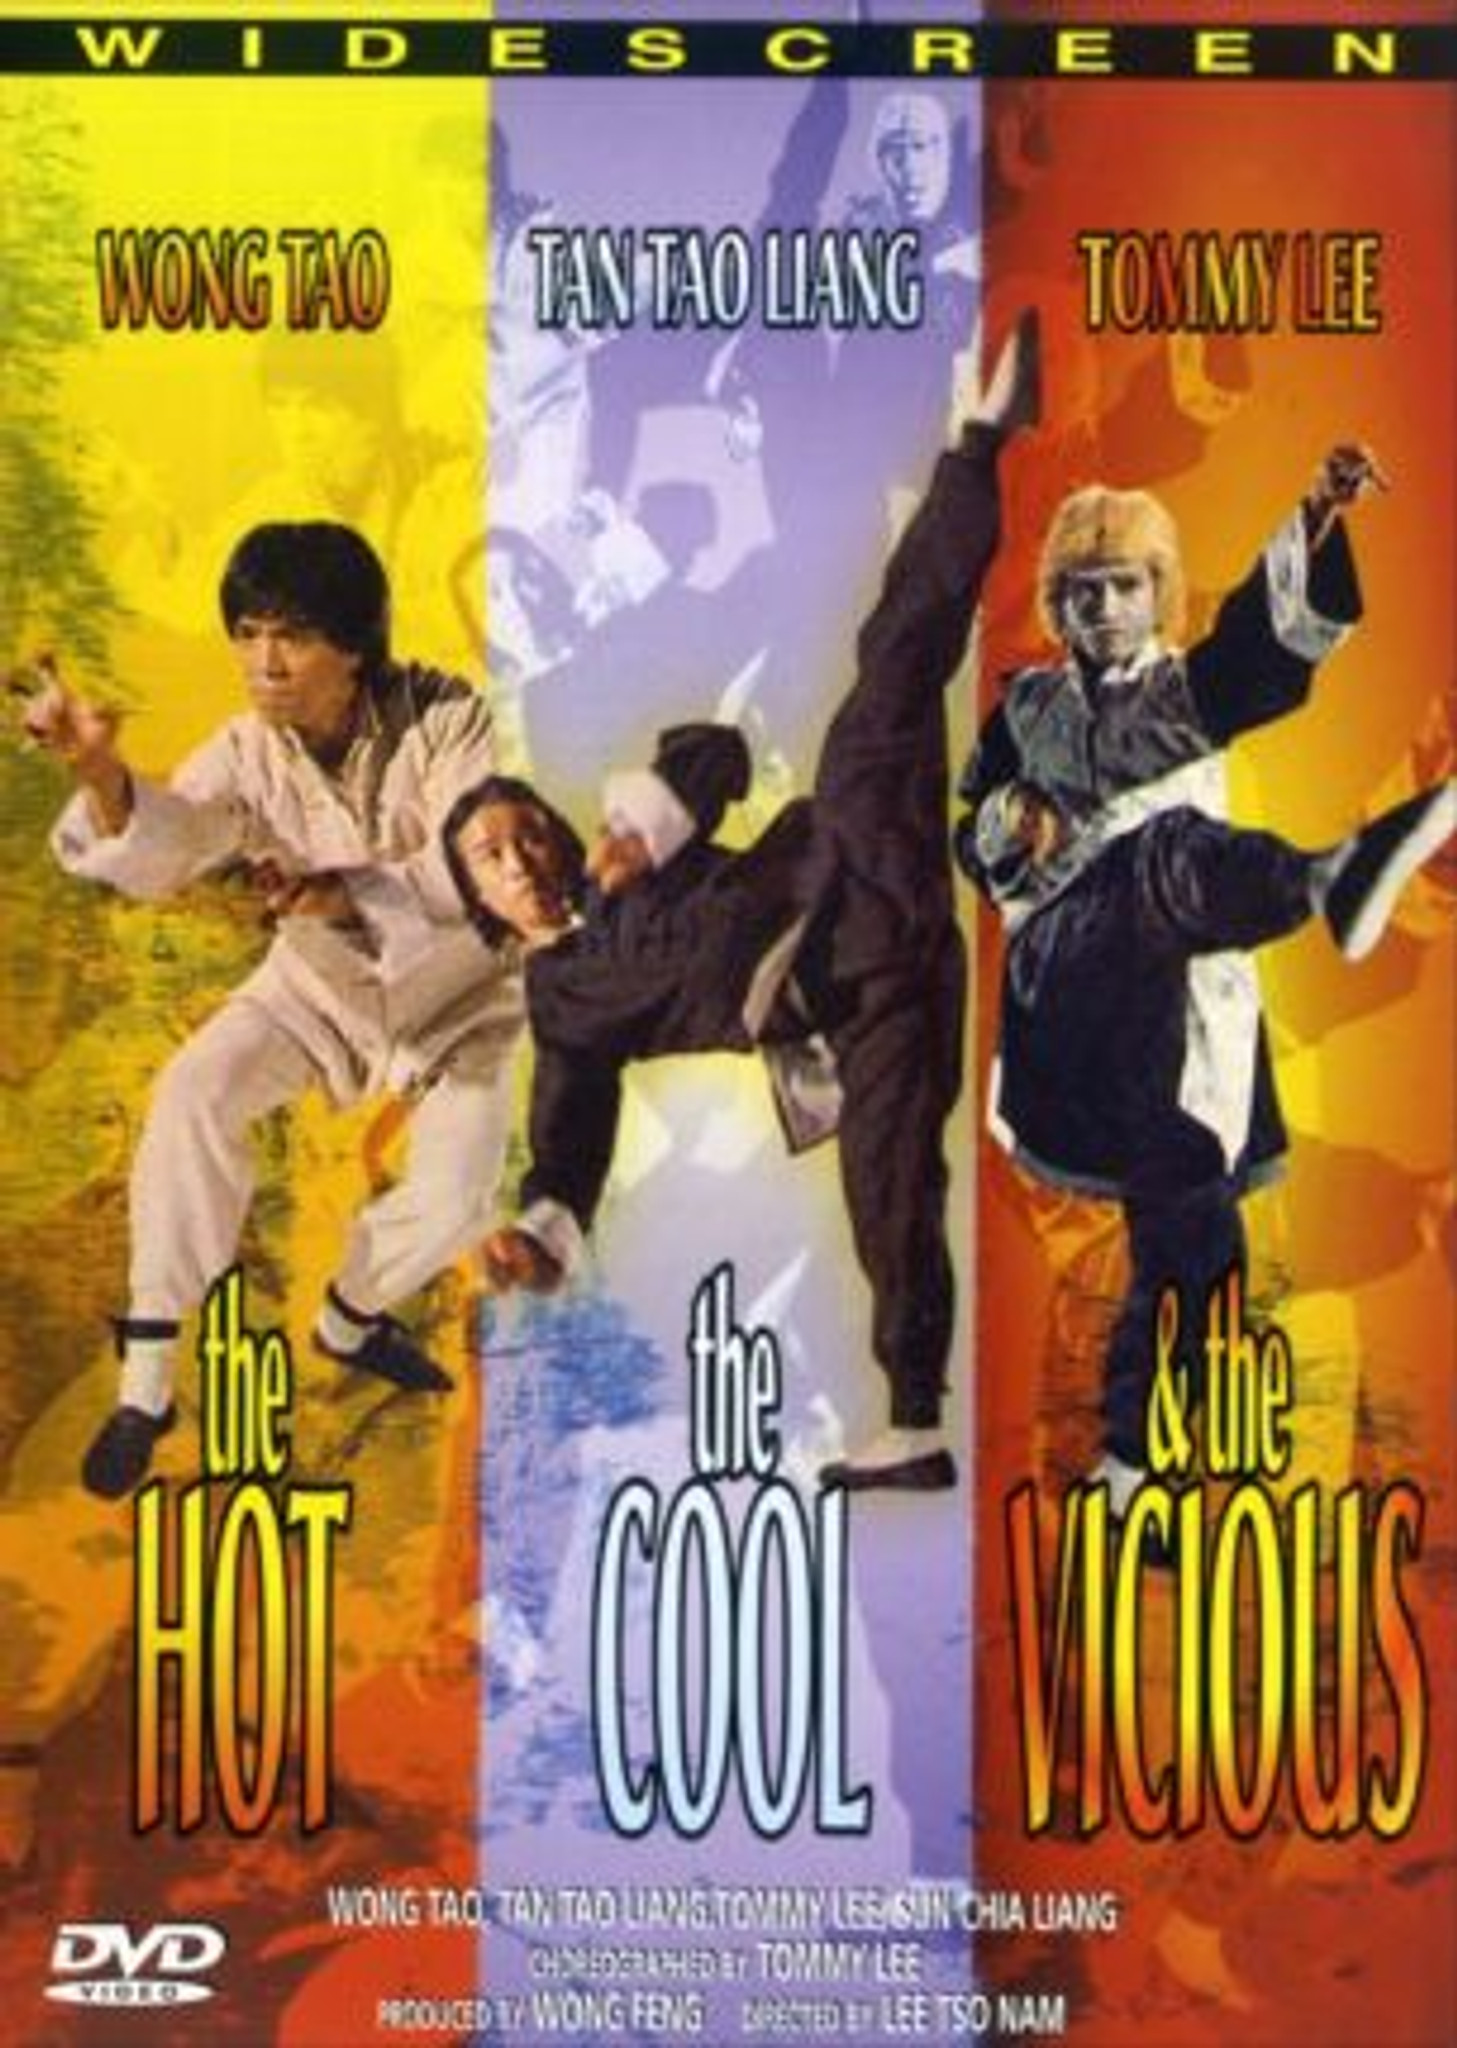 The Hot, The Cool, and The Vicious Collector's Edition Dvd